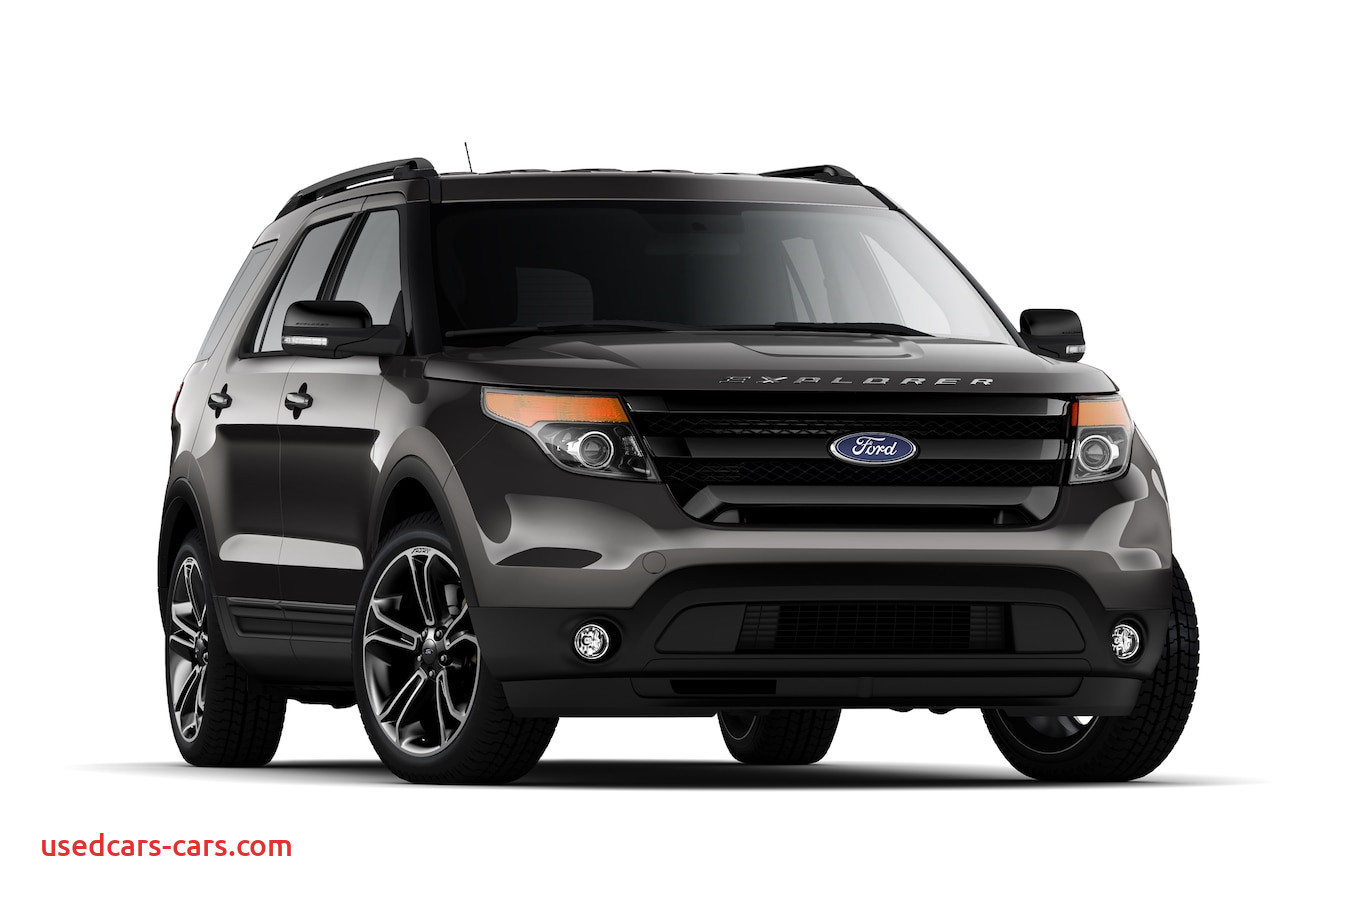 Ford Explorer 2015 Spec Beautiful 2015 ford Explorer Reviews Research Explorer Prices